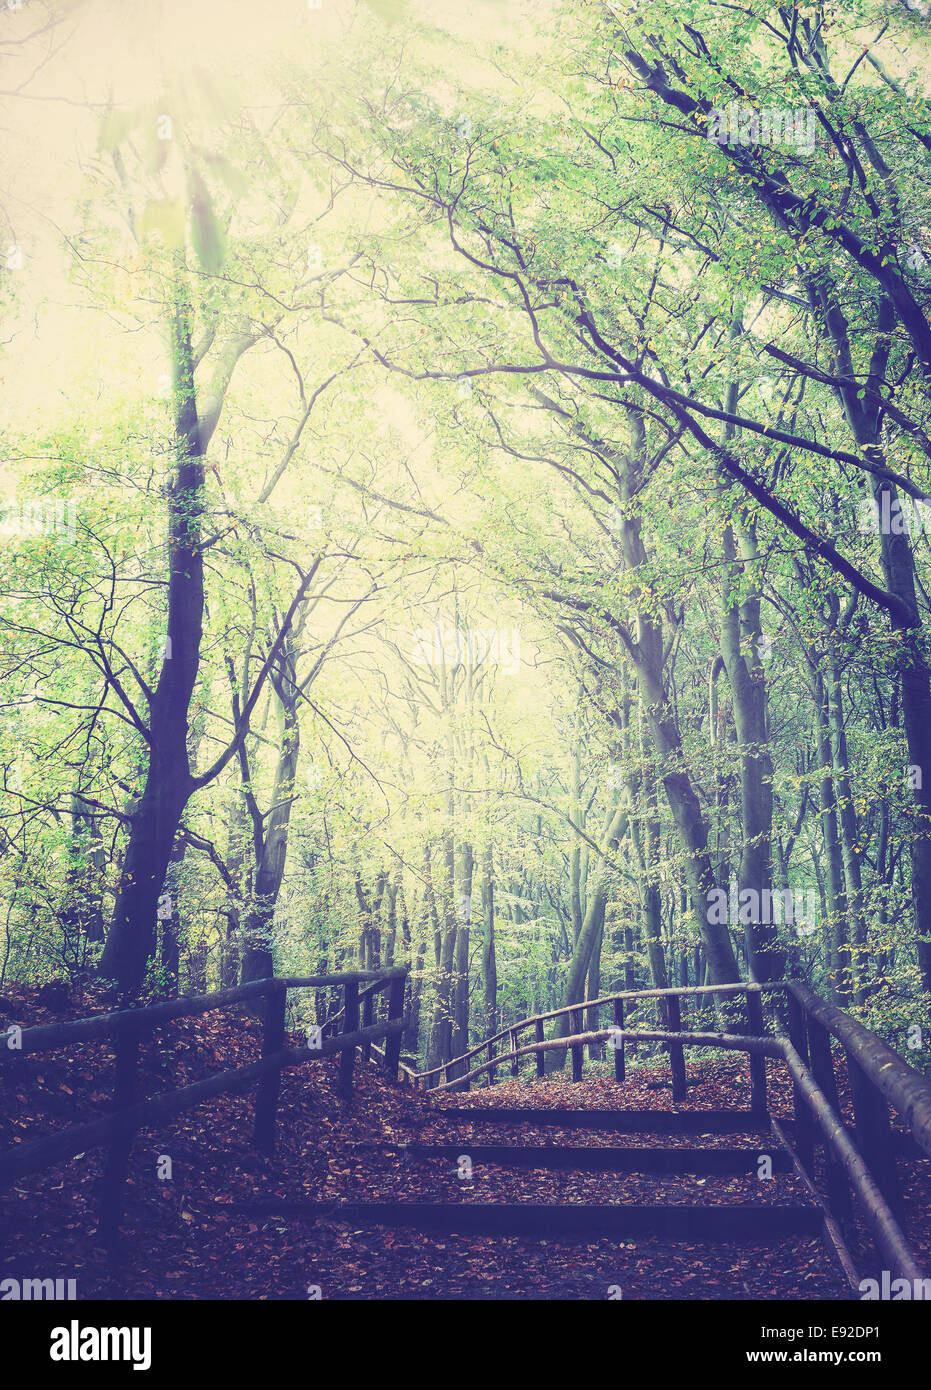 Retro vintage filtered picture of wooden path in forest. - Stock Image